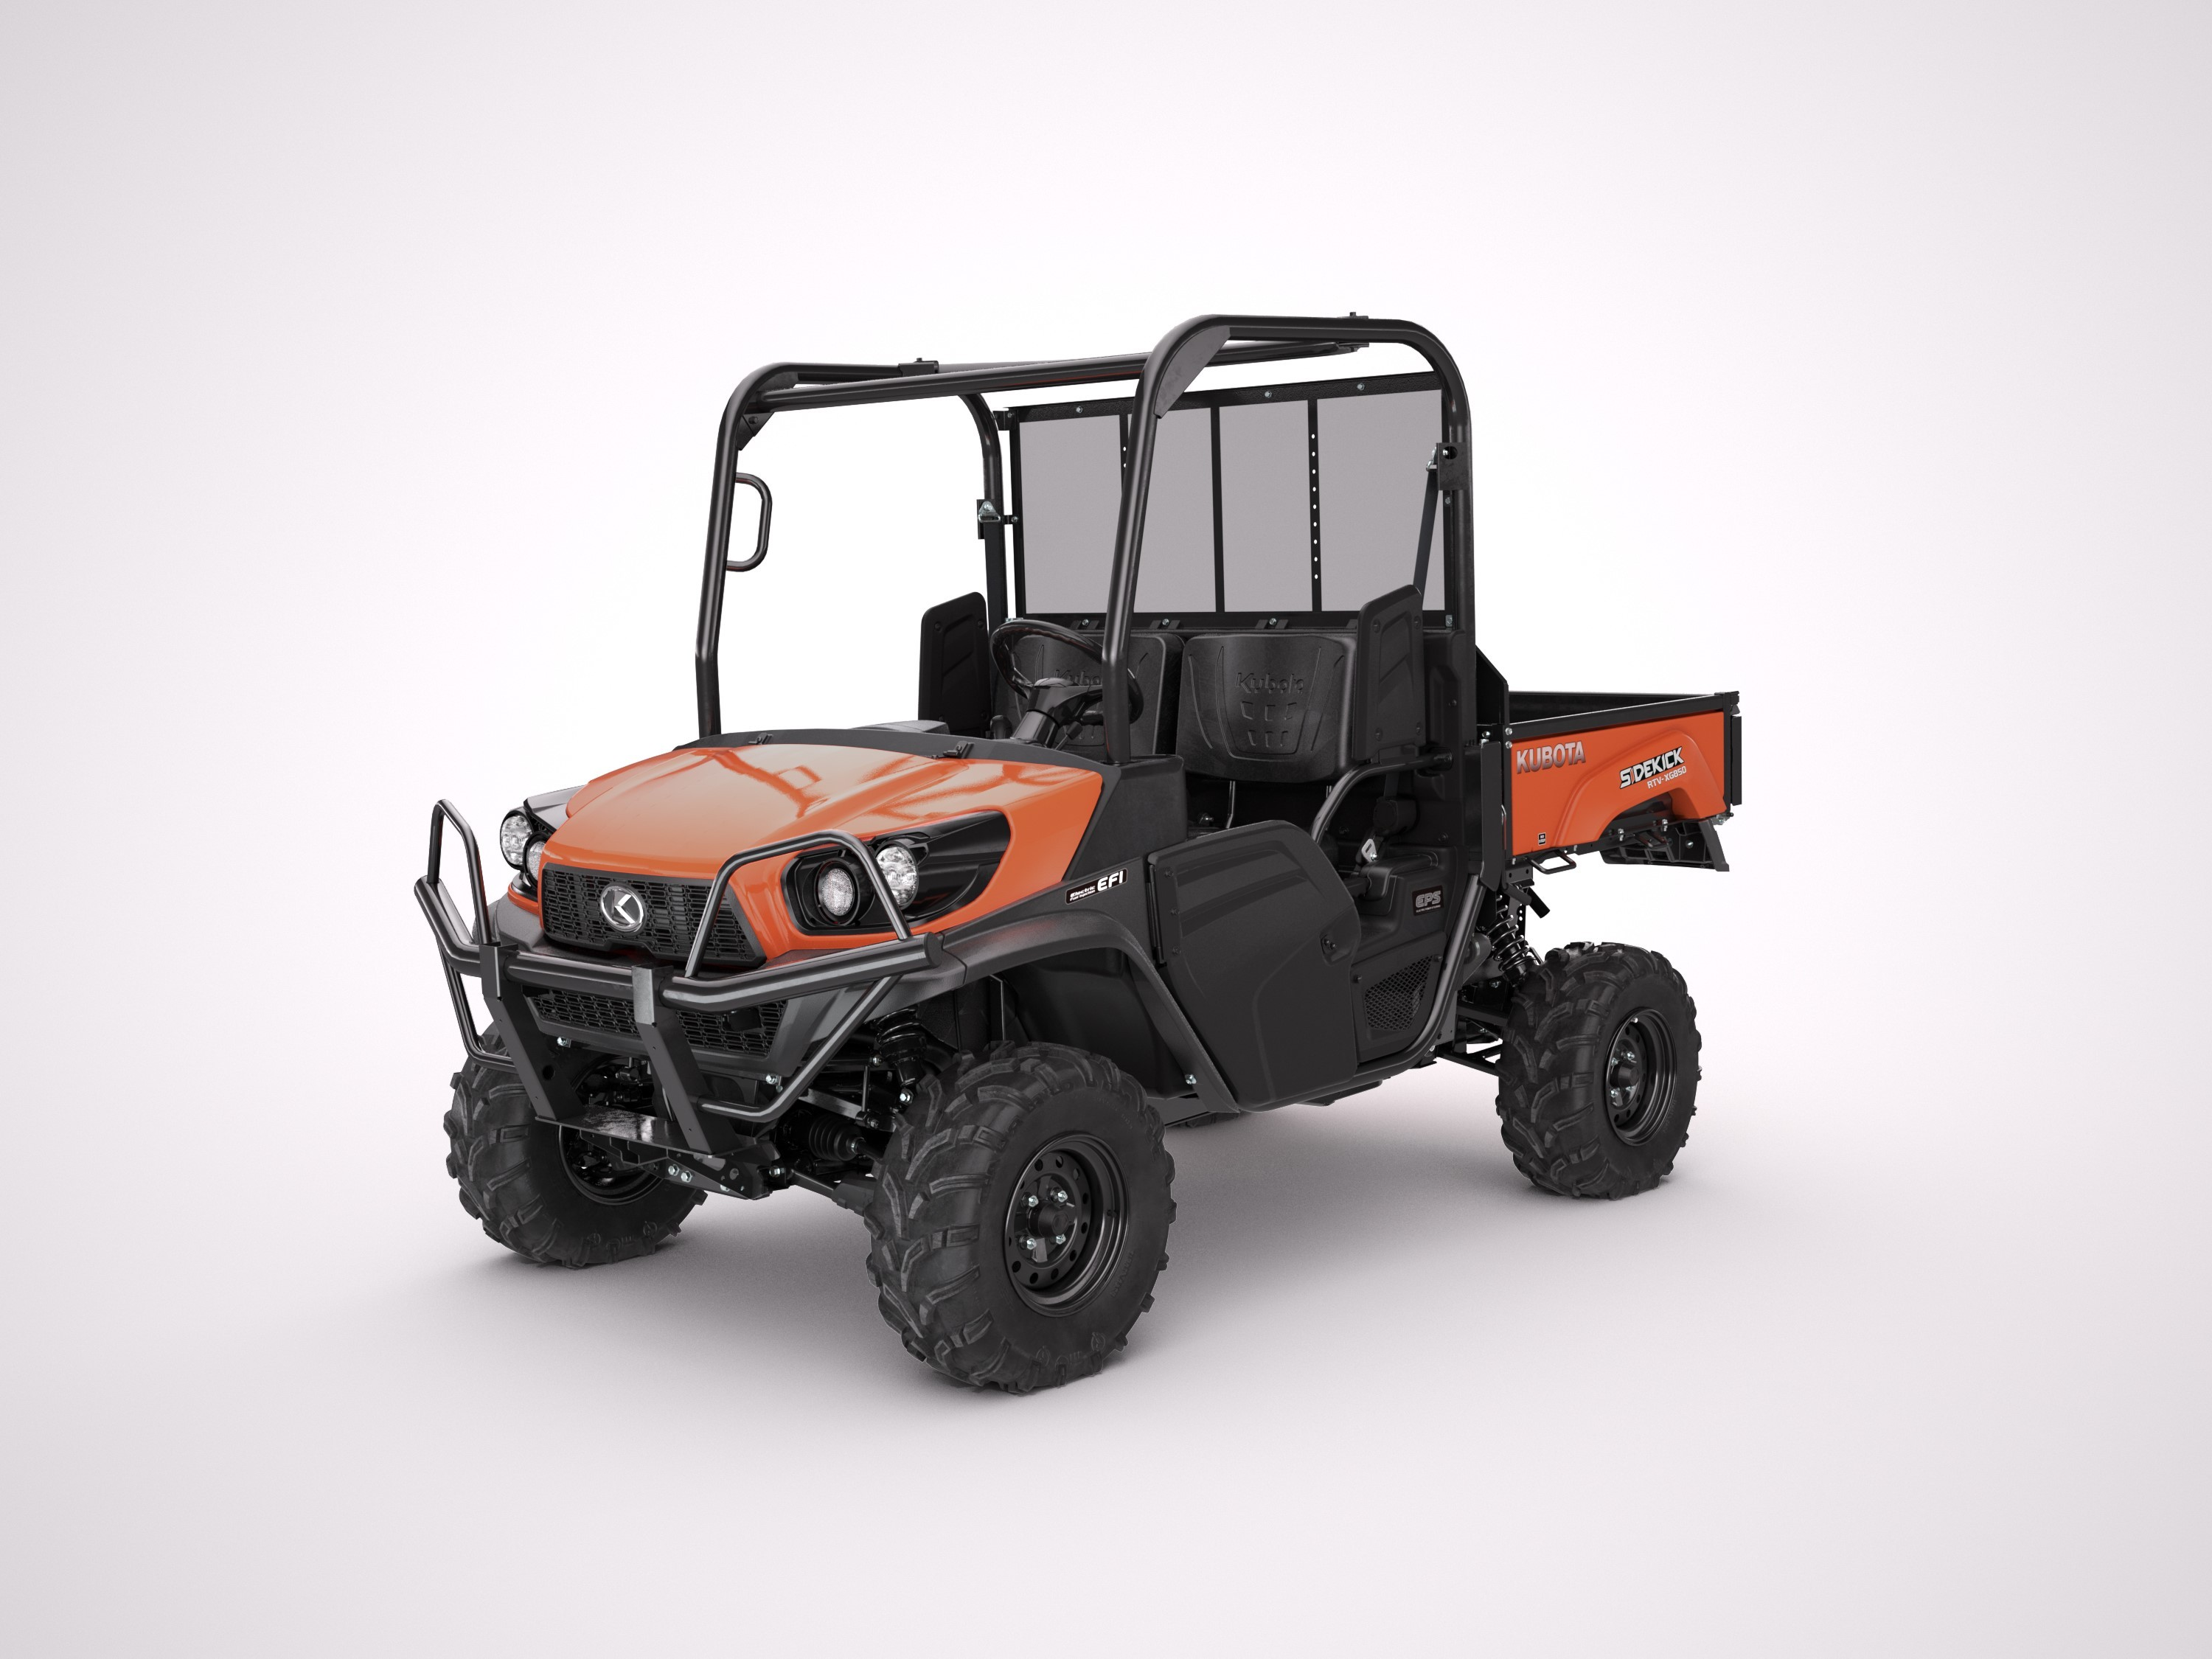 The Newest Addition To Kubota Rtv Family Arriving In 2018 1140 Tractor Wiring Diagram Announcing All New Gas Powered Xg850 Sidekick Business Wire